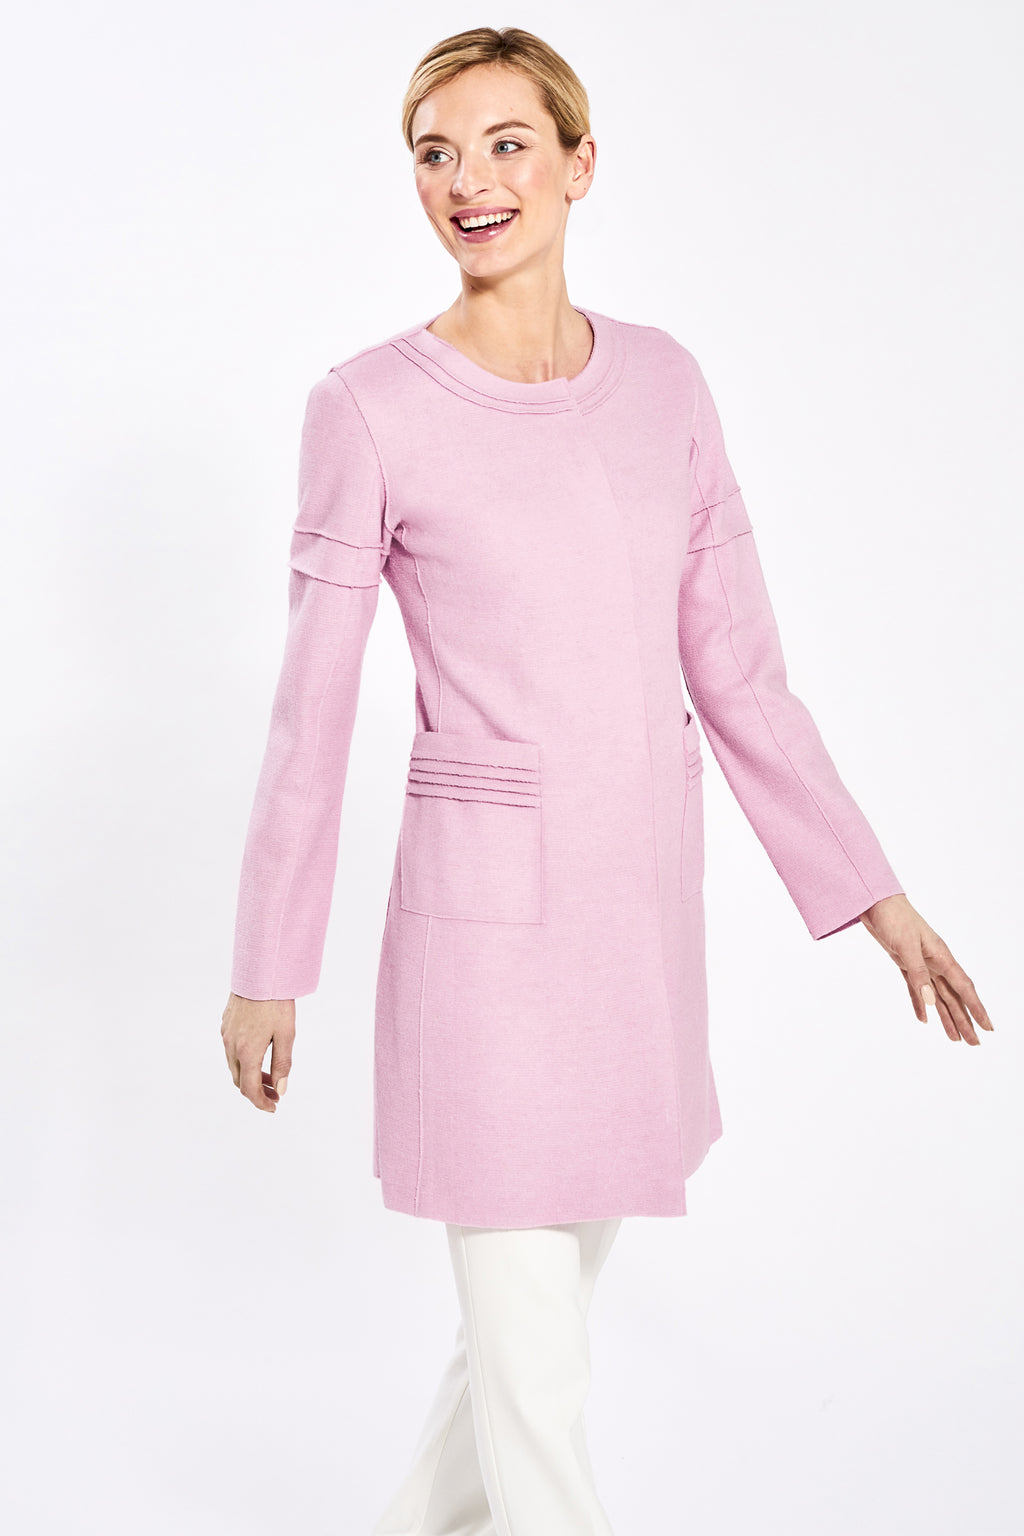 Straight Cut with Square Pockets, Parfait Pink